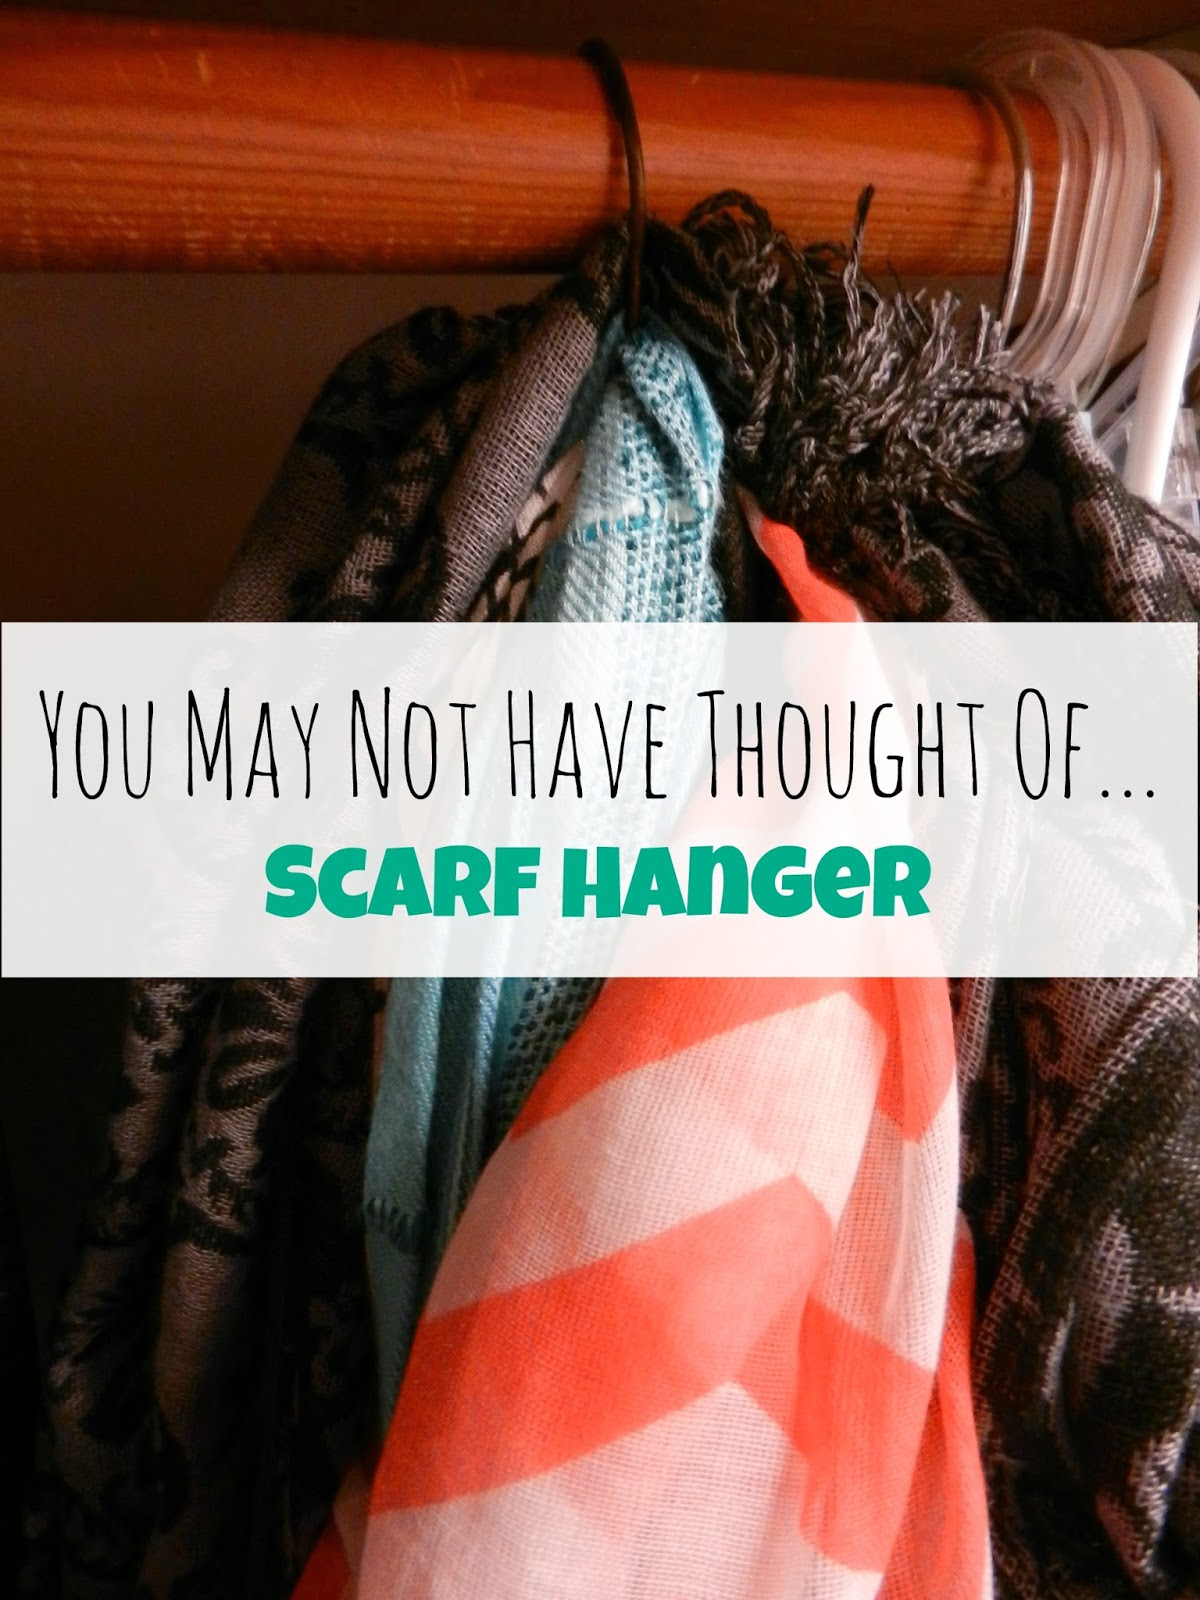 You May Not Have Thought Of: Scarf Hanger